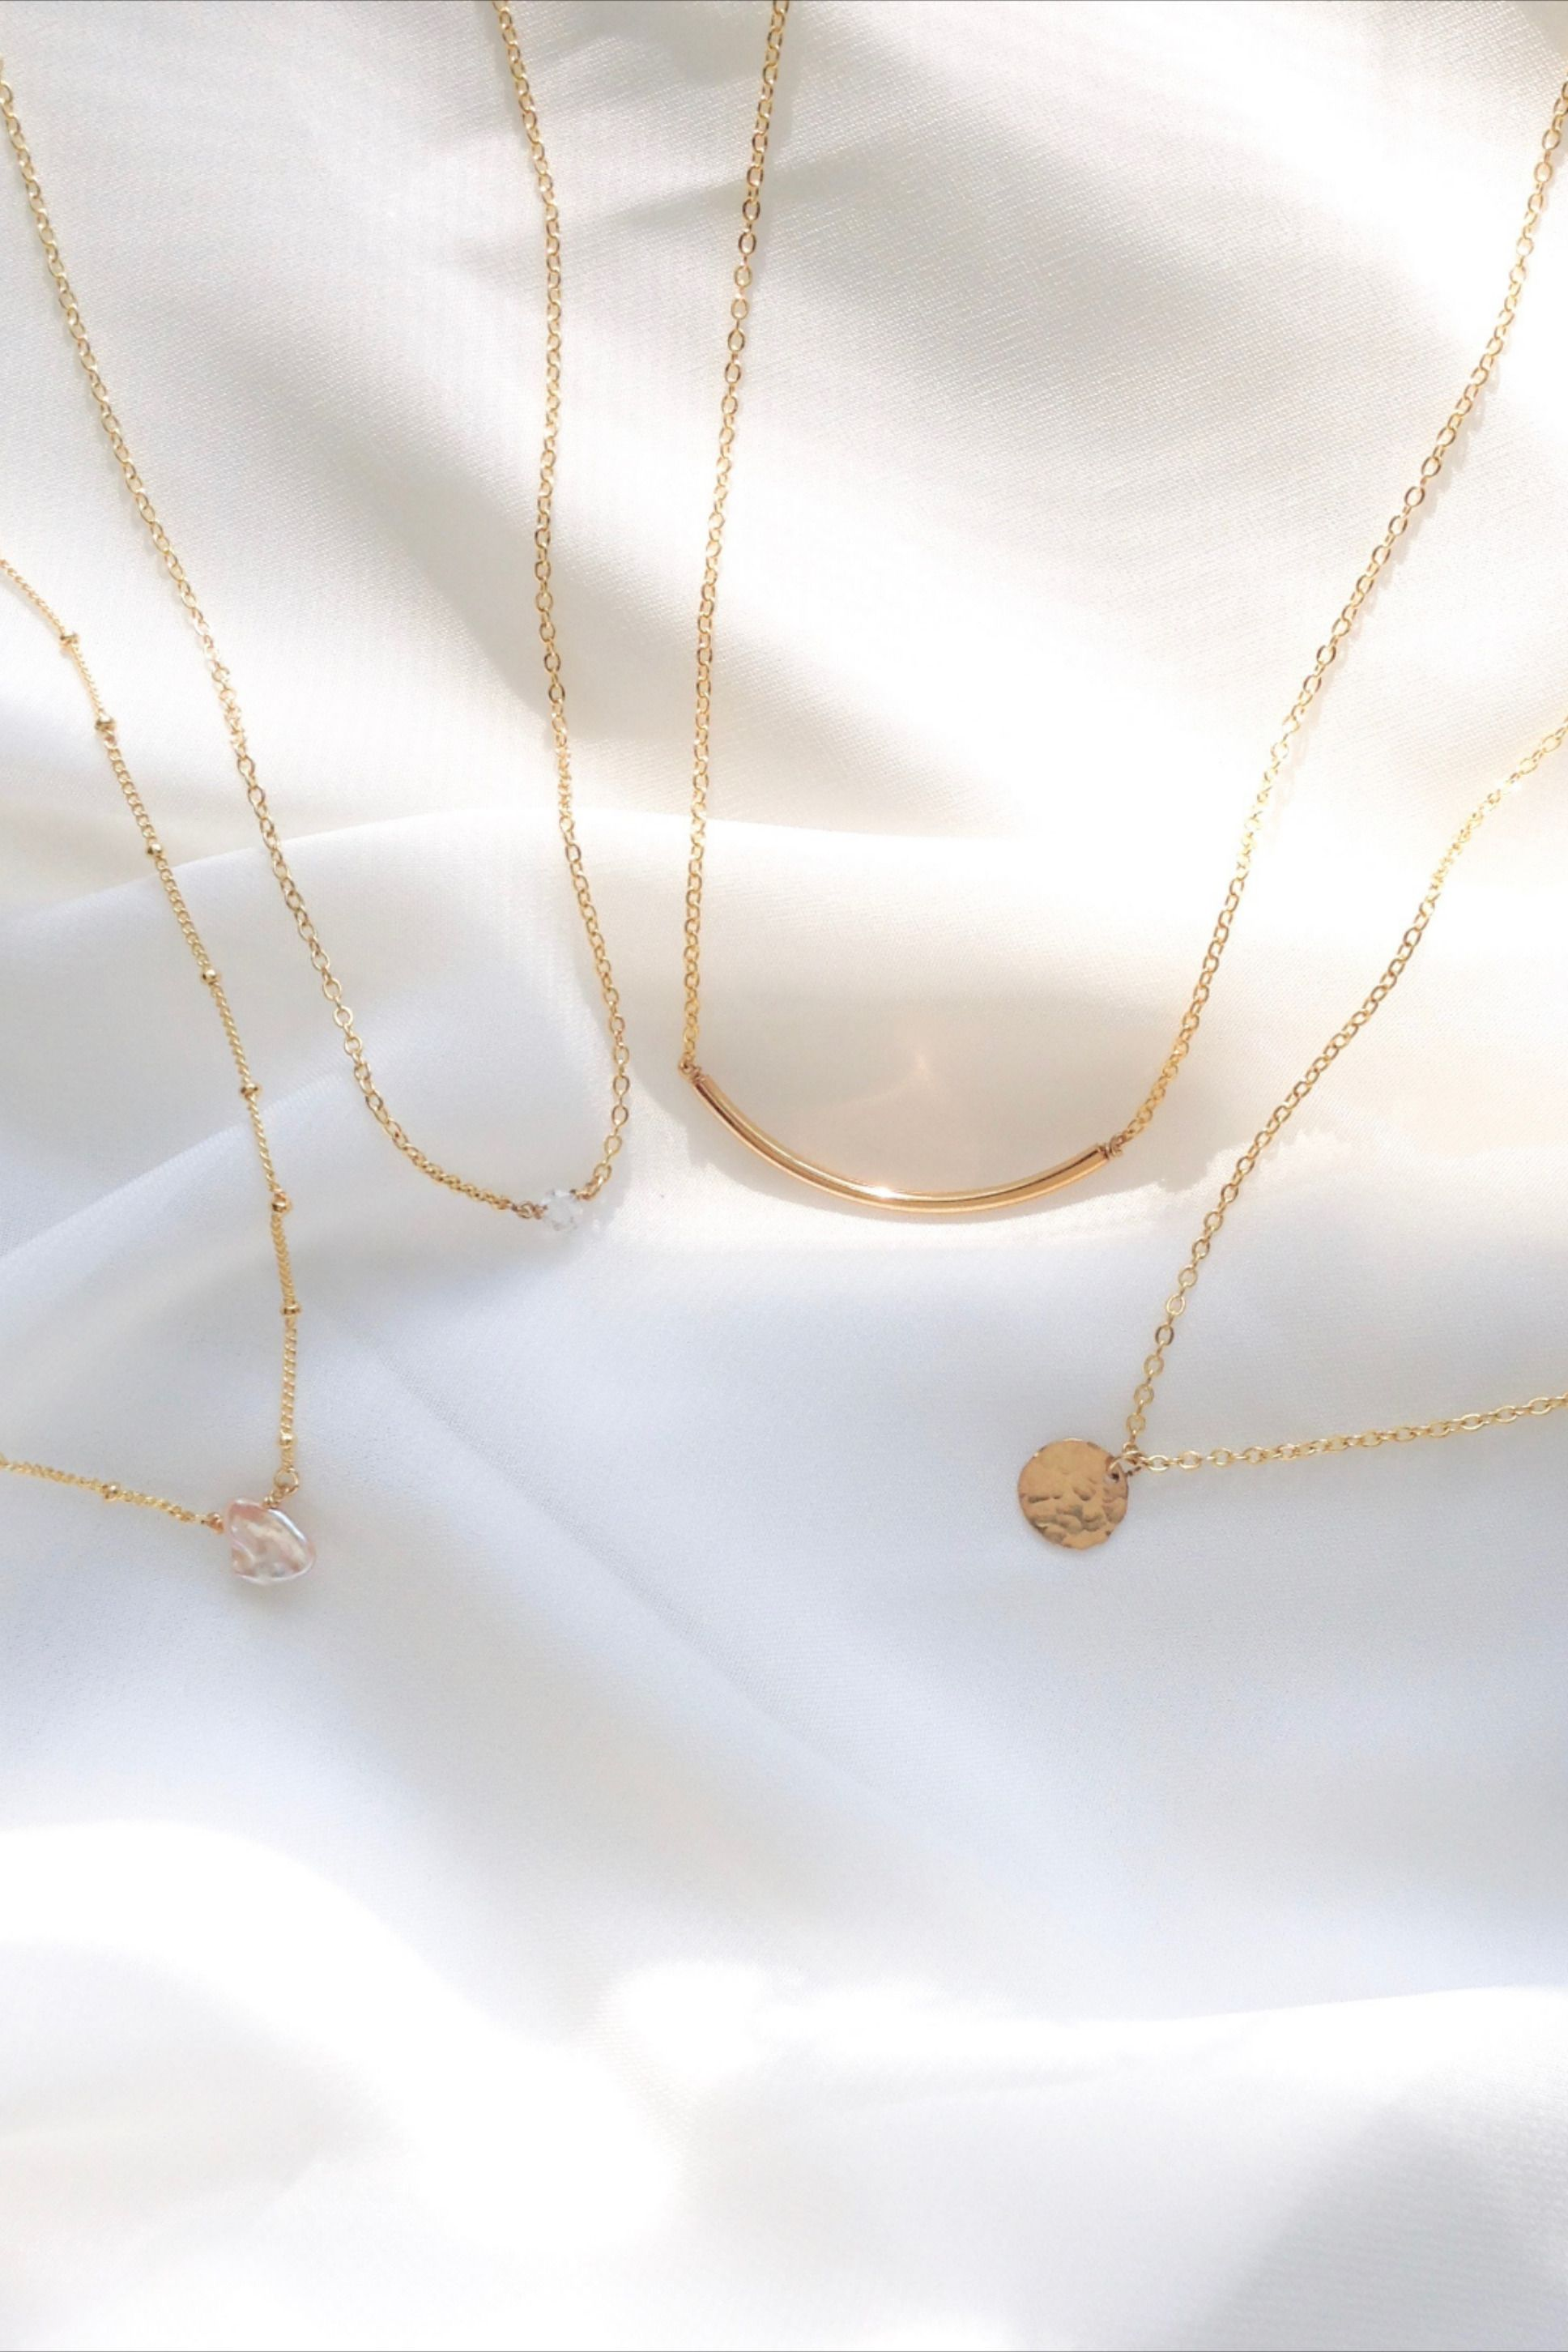 Photo of Dainty Everyday Necklaces | IB Jewelry